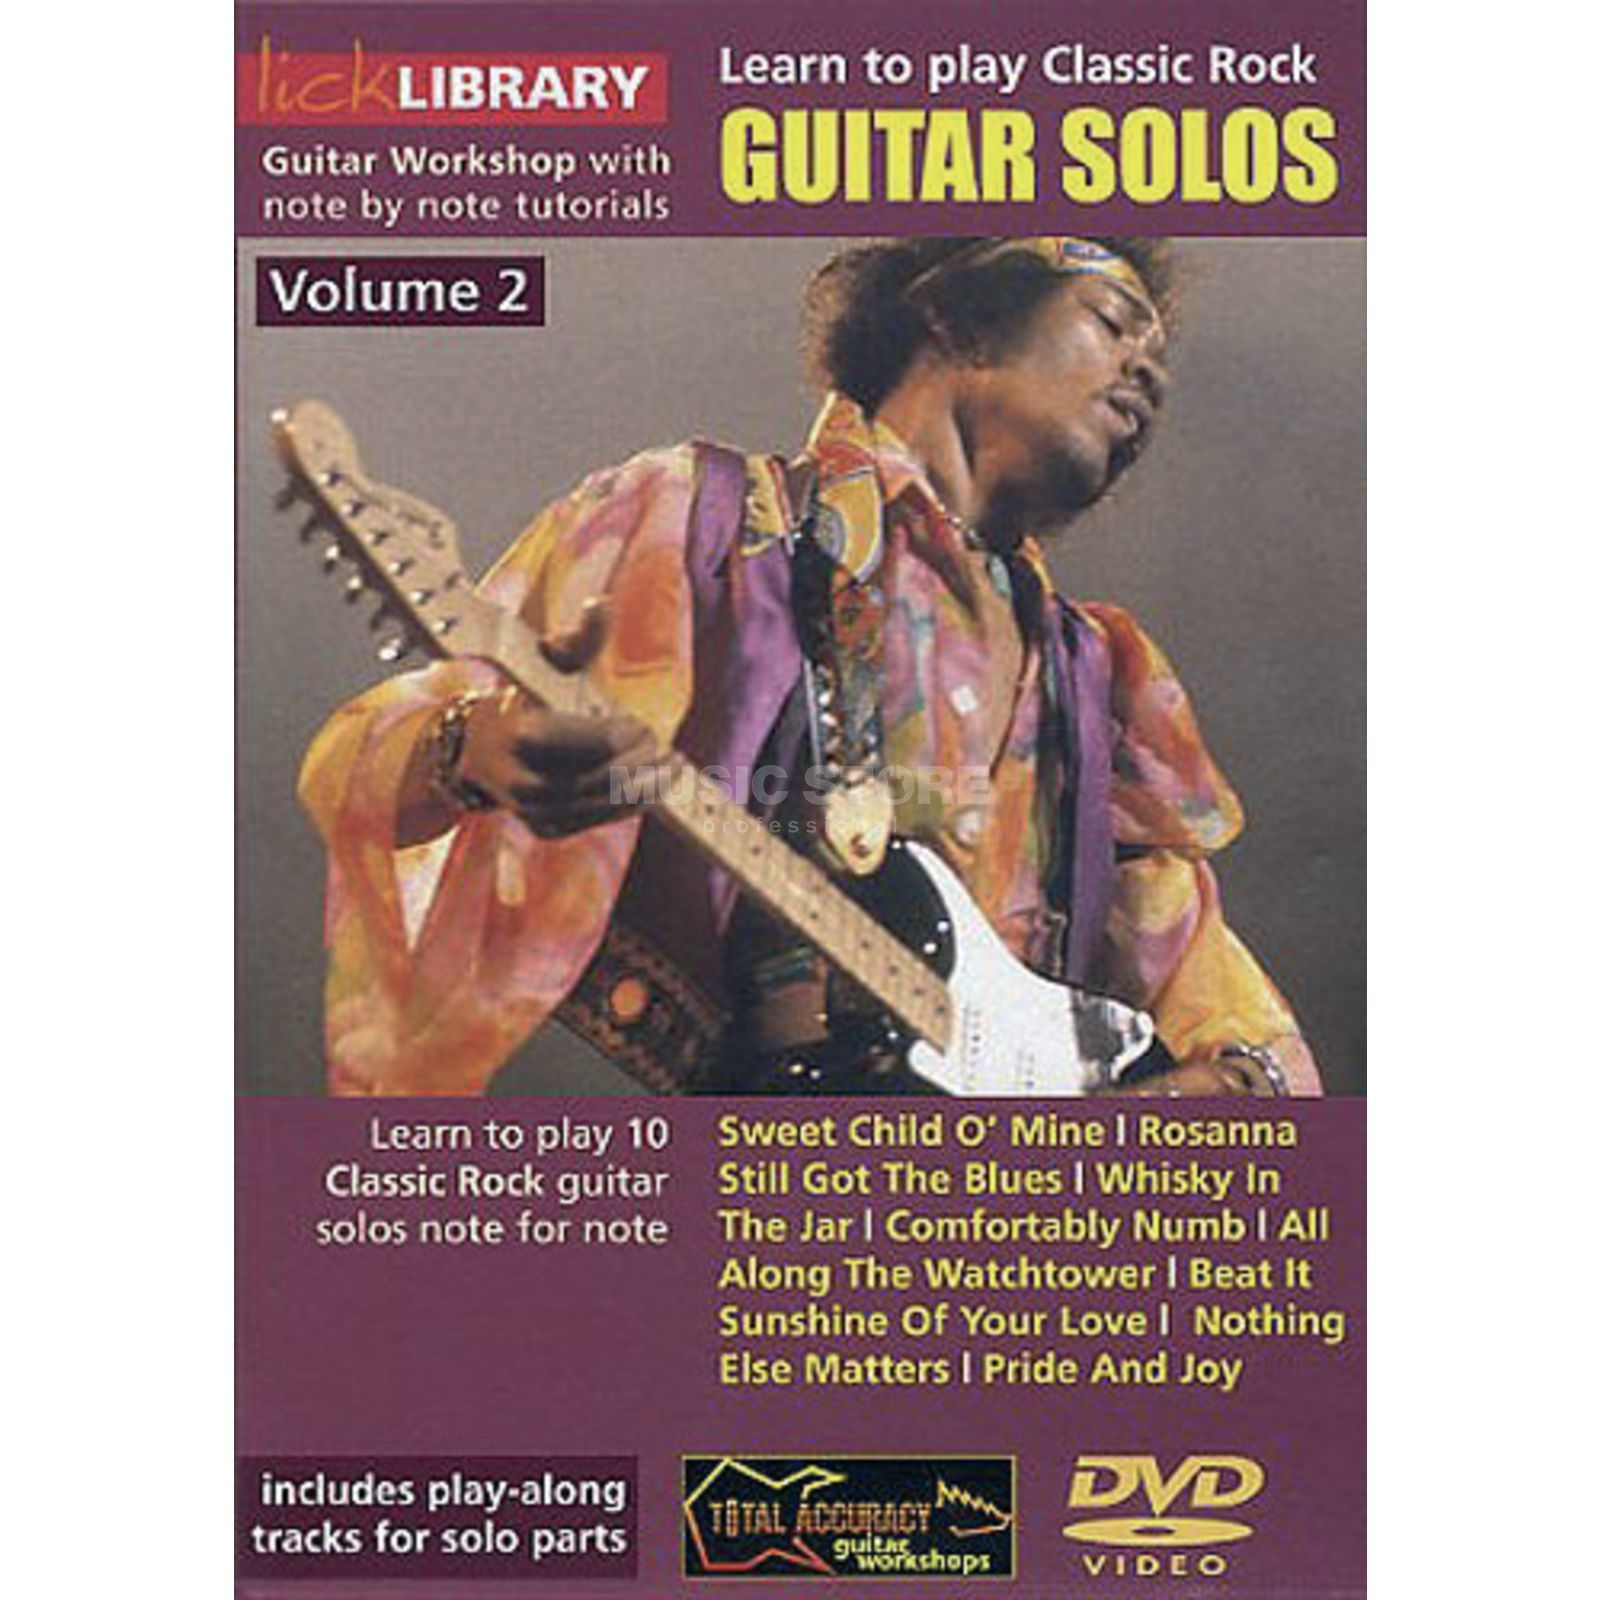 Roadrock International Lick Library: Learn To Play Classic Rock Guitar Solos 2 DVD Product Image